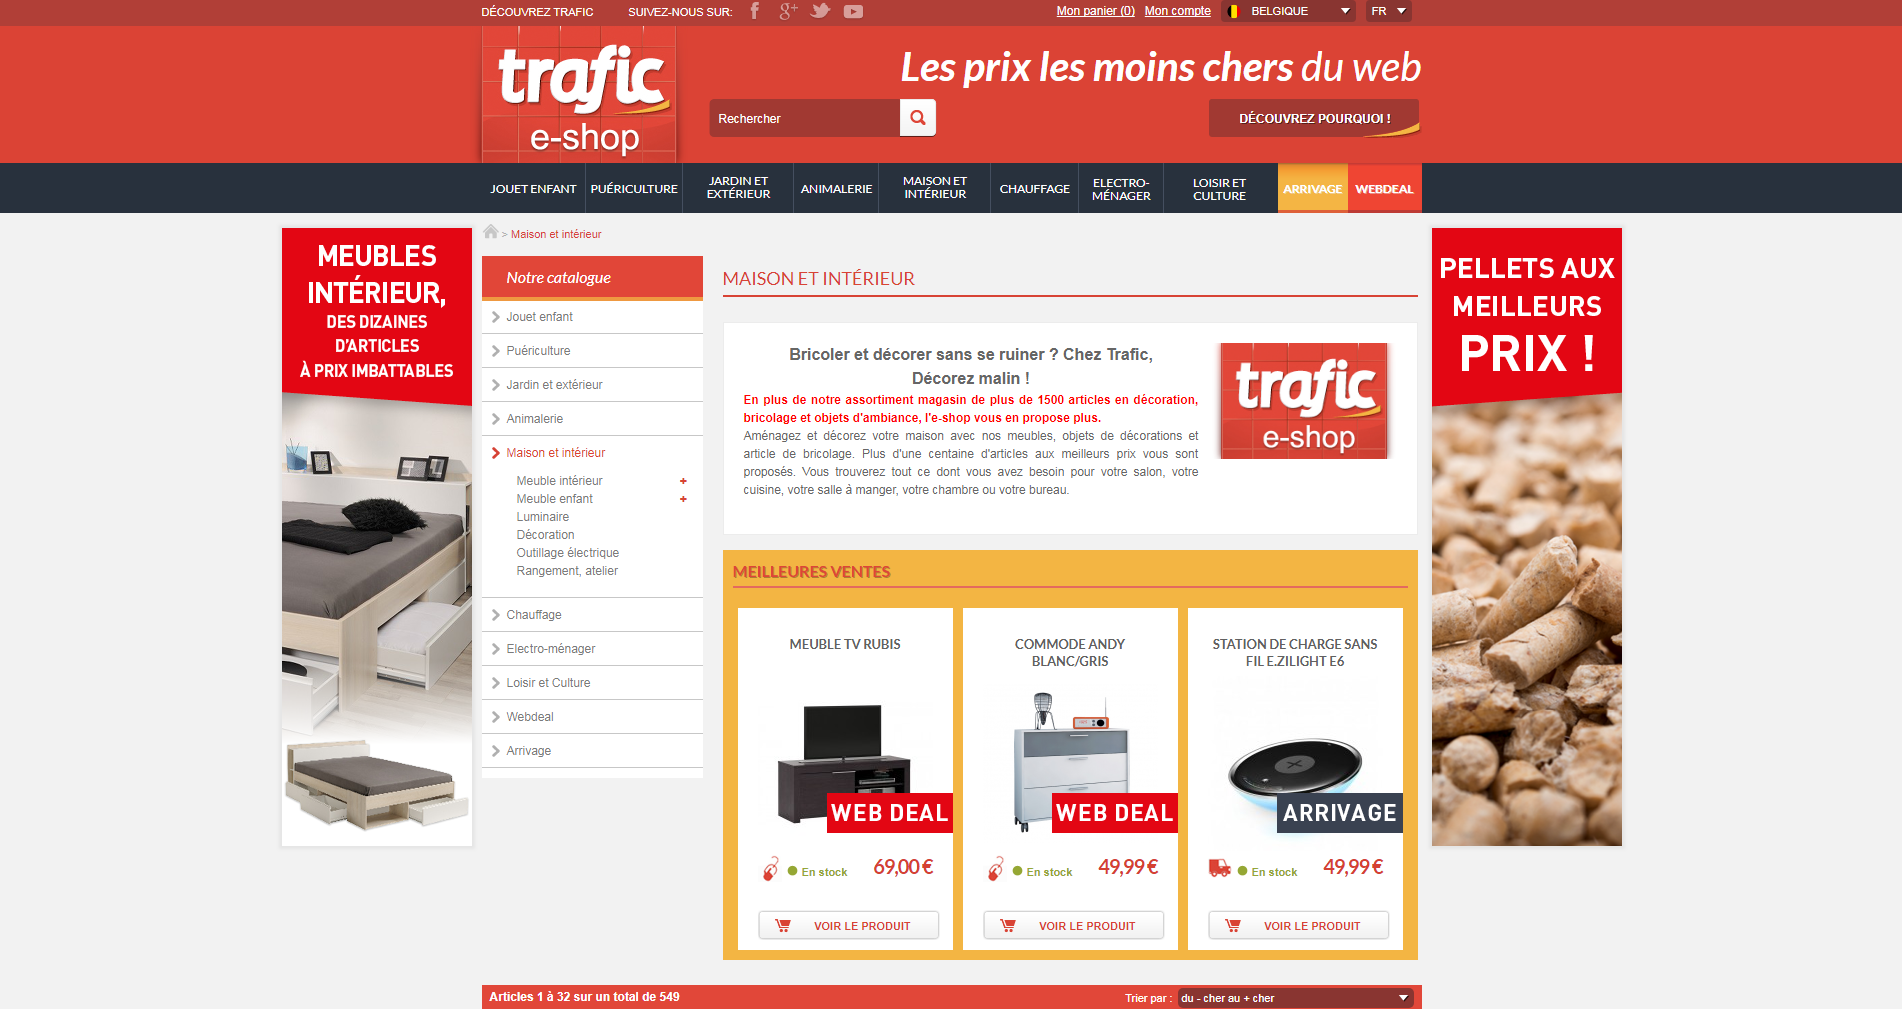 Trafic - Page interne